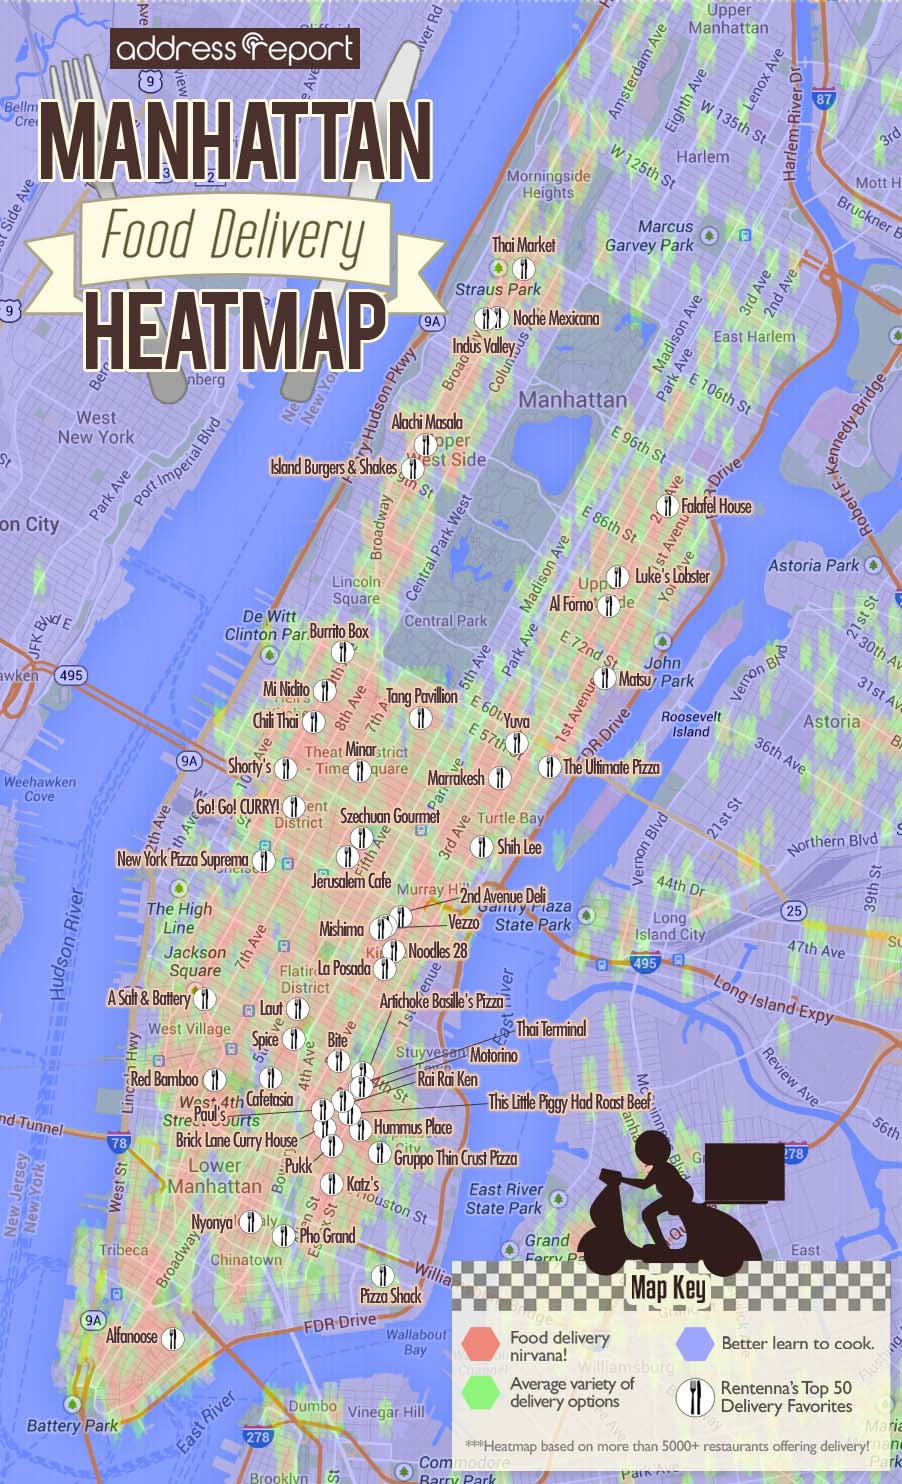 Manhattan Food Delivery Heatmap by Address Report